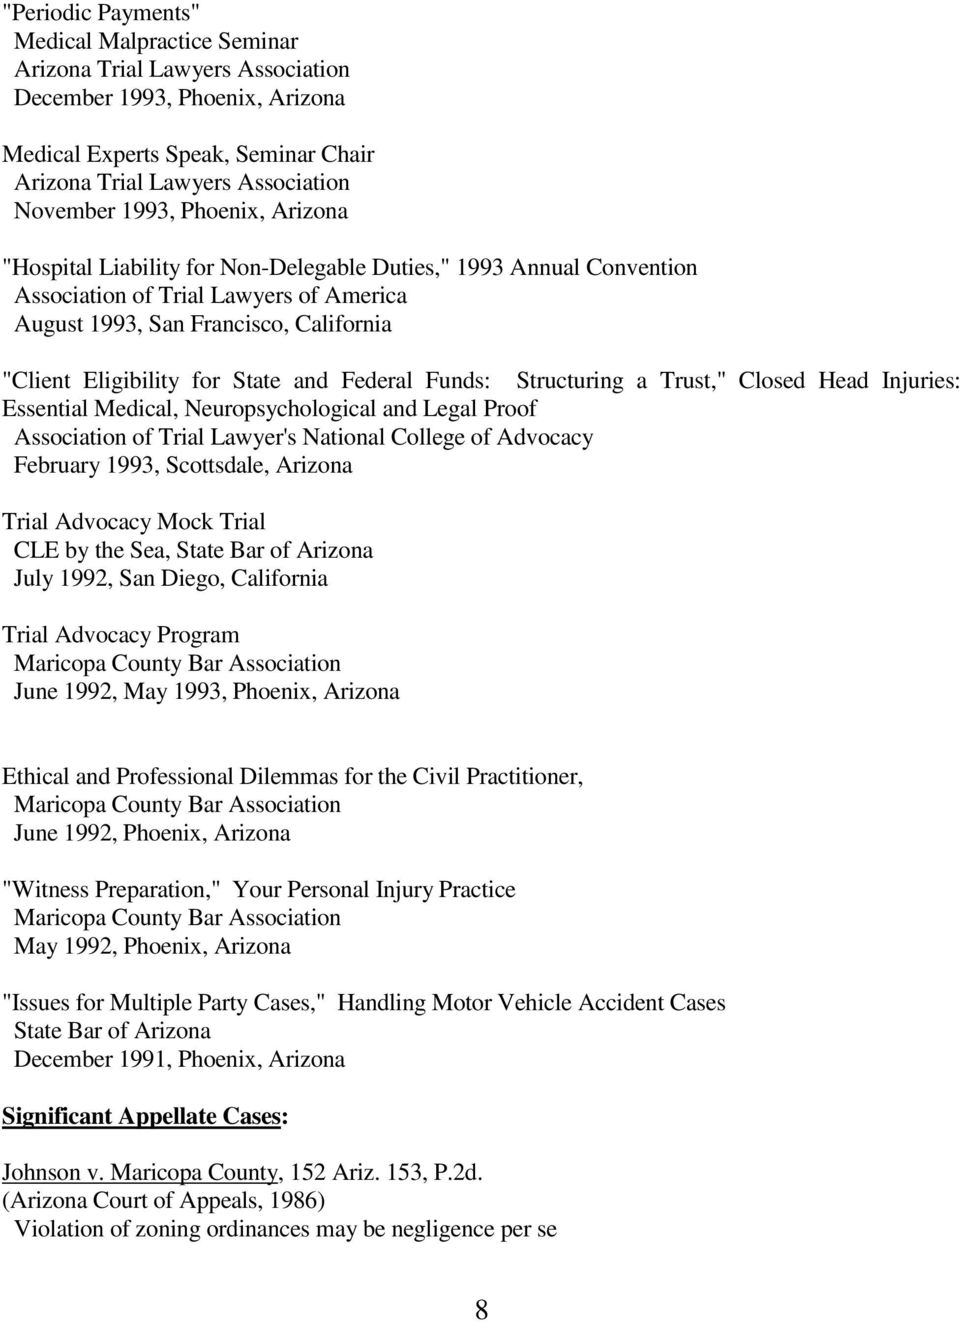 "Federal Funds: Structuring a Trust,"" Closed Head Injuries: Essential Medical, Neuropsychological and Legal Proof Association of Trial Lawyer's National College of Advocacy February 1993, Scottsdale,"